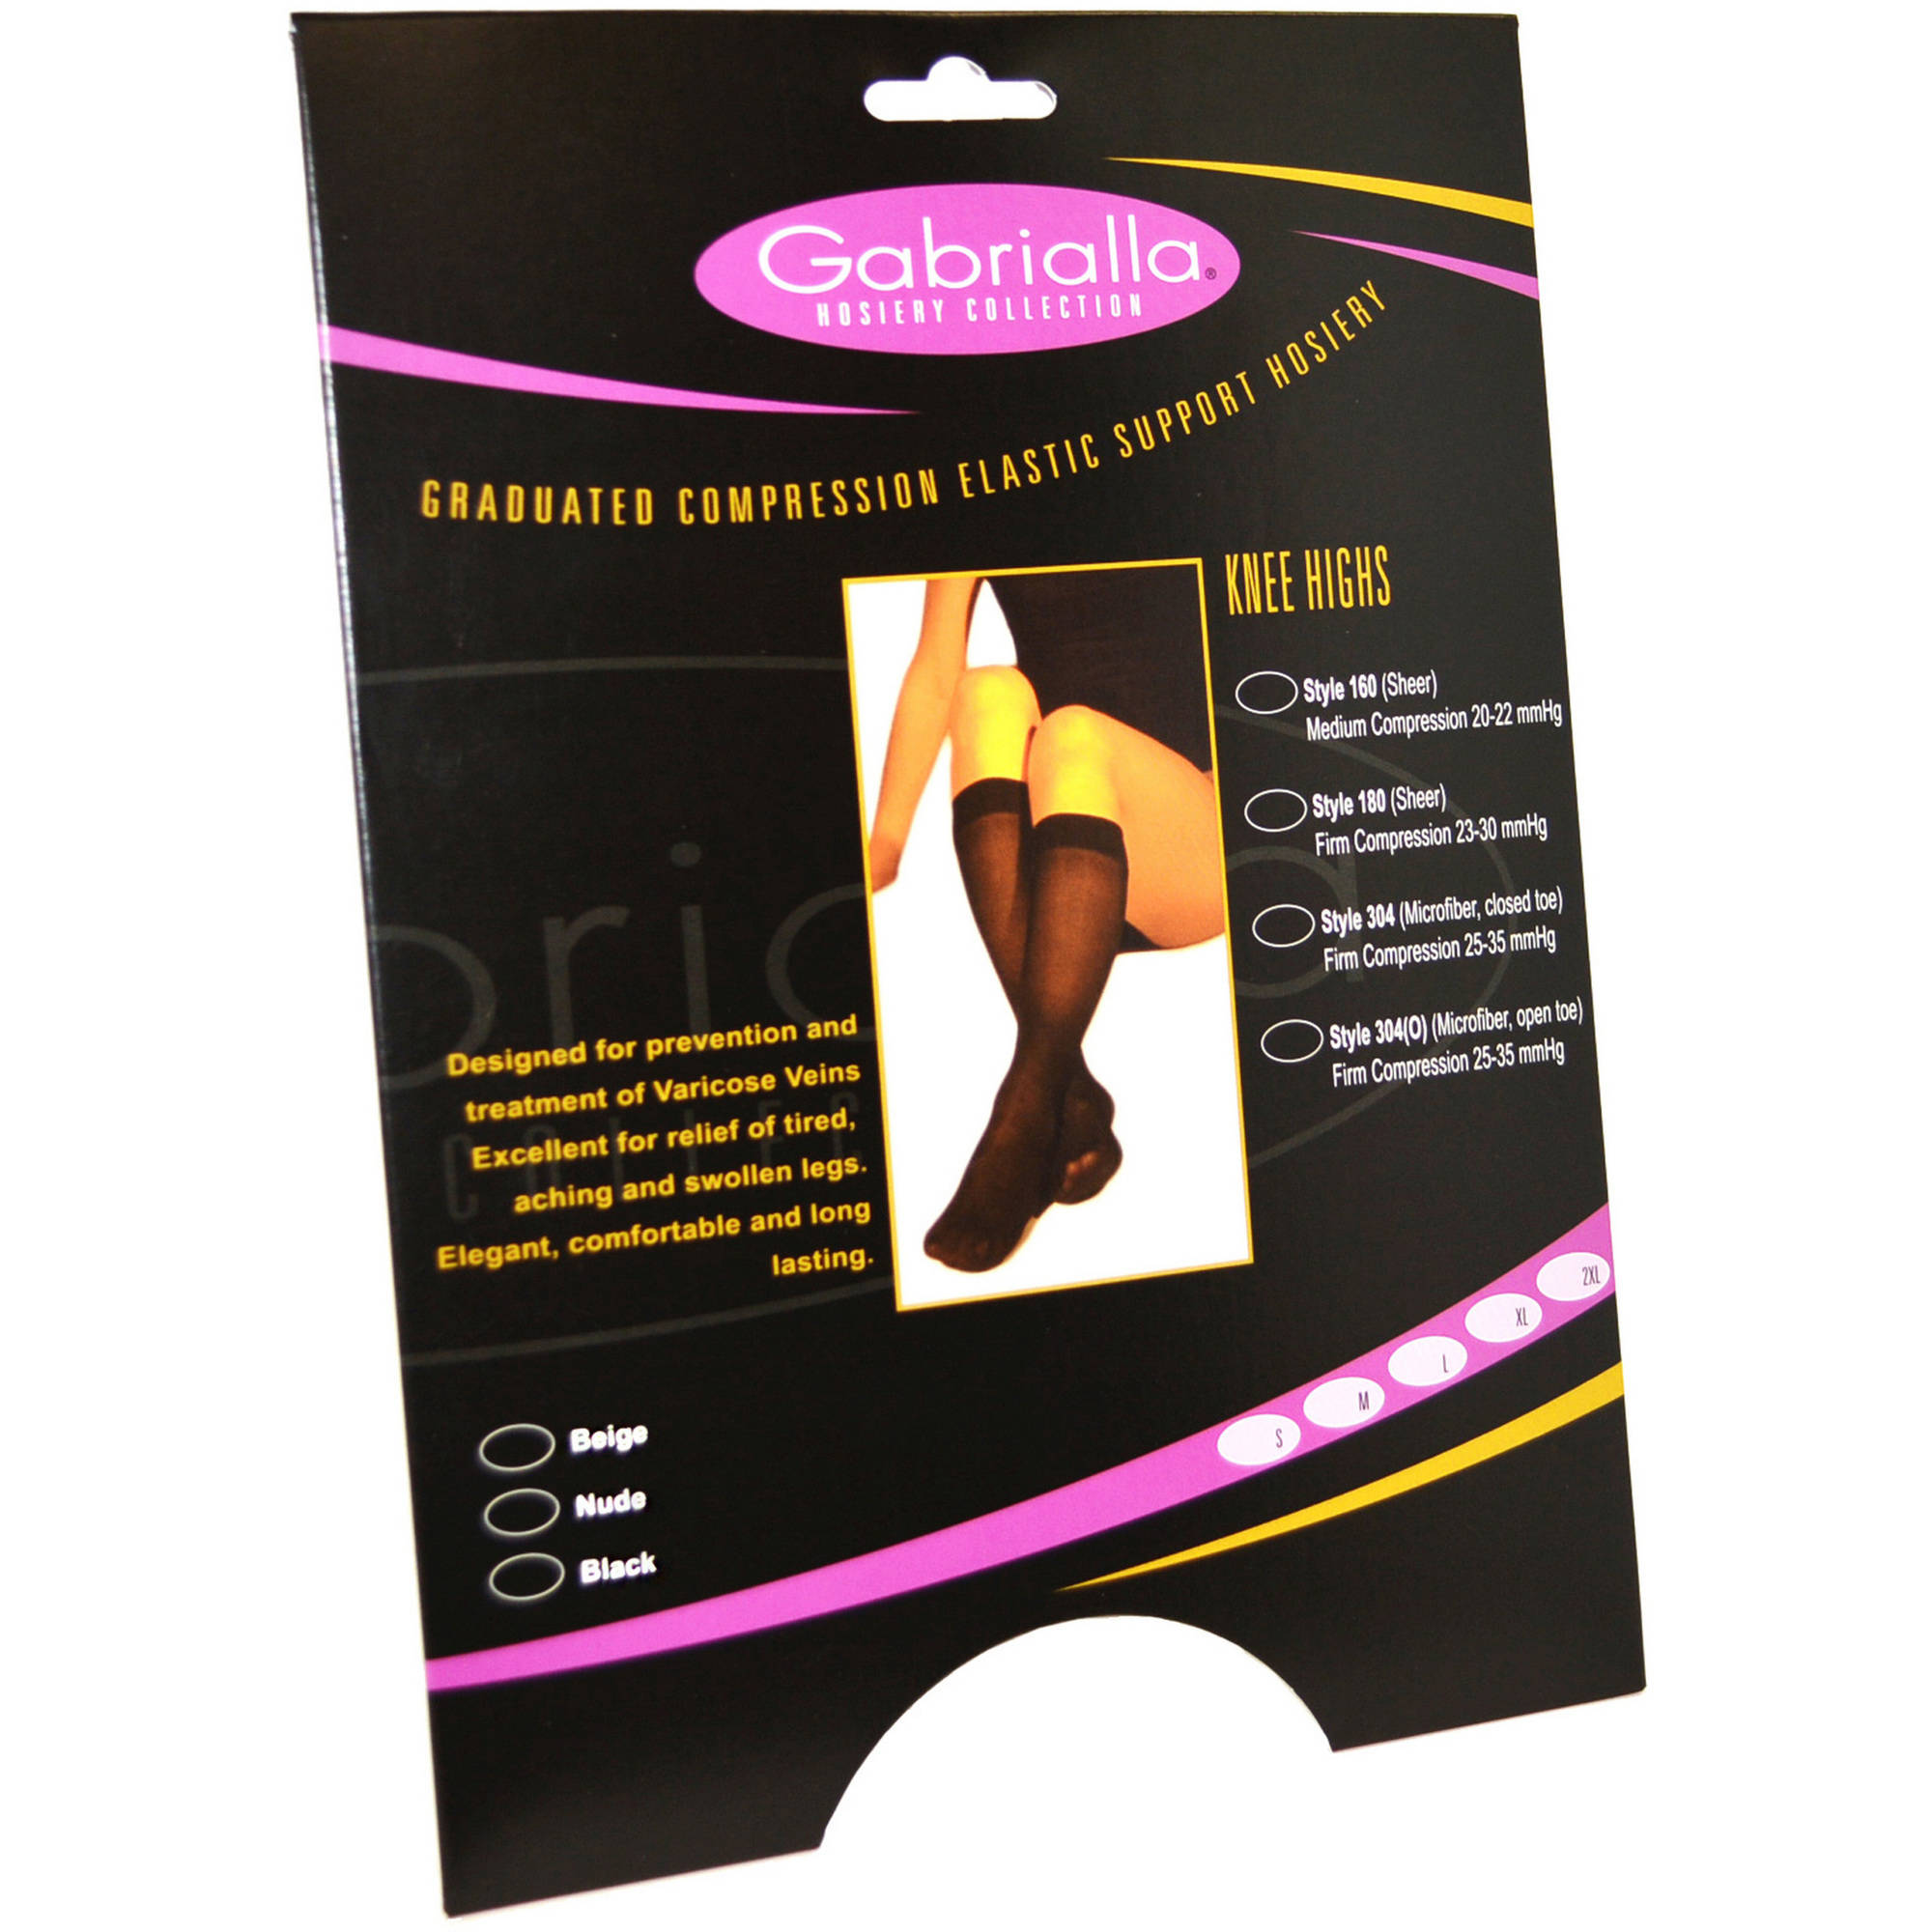 GABRIALLA Sheer Knee Highs - Compression (20-22 mmHg): H-160